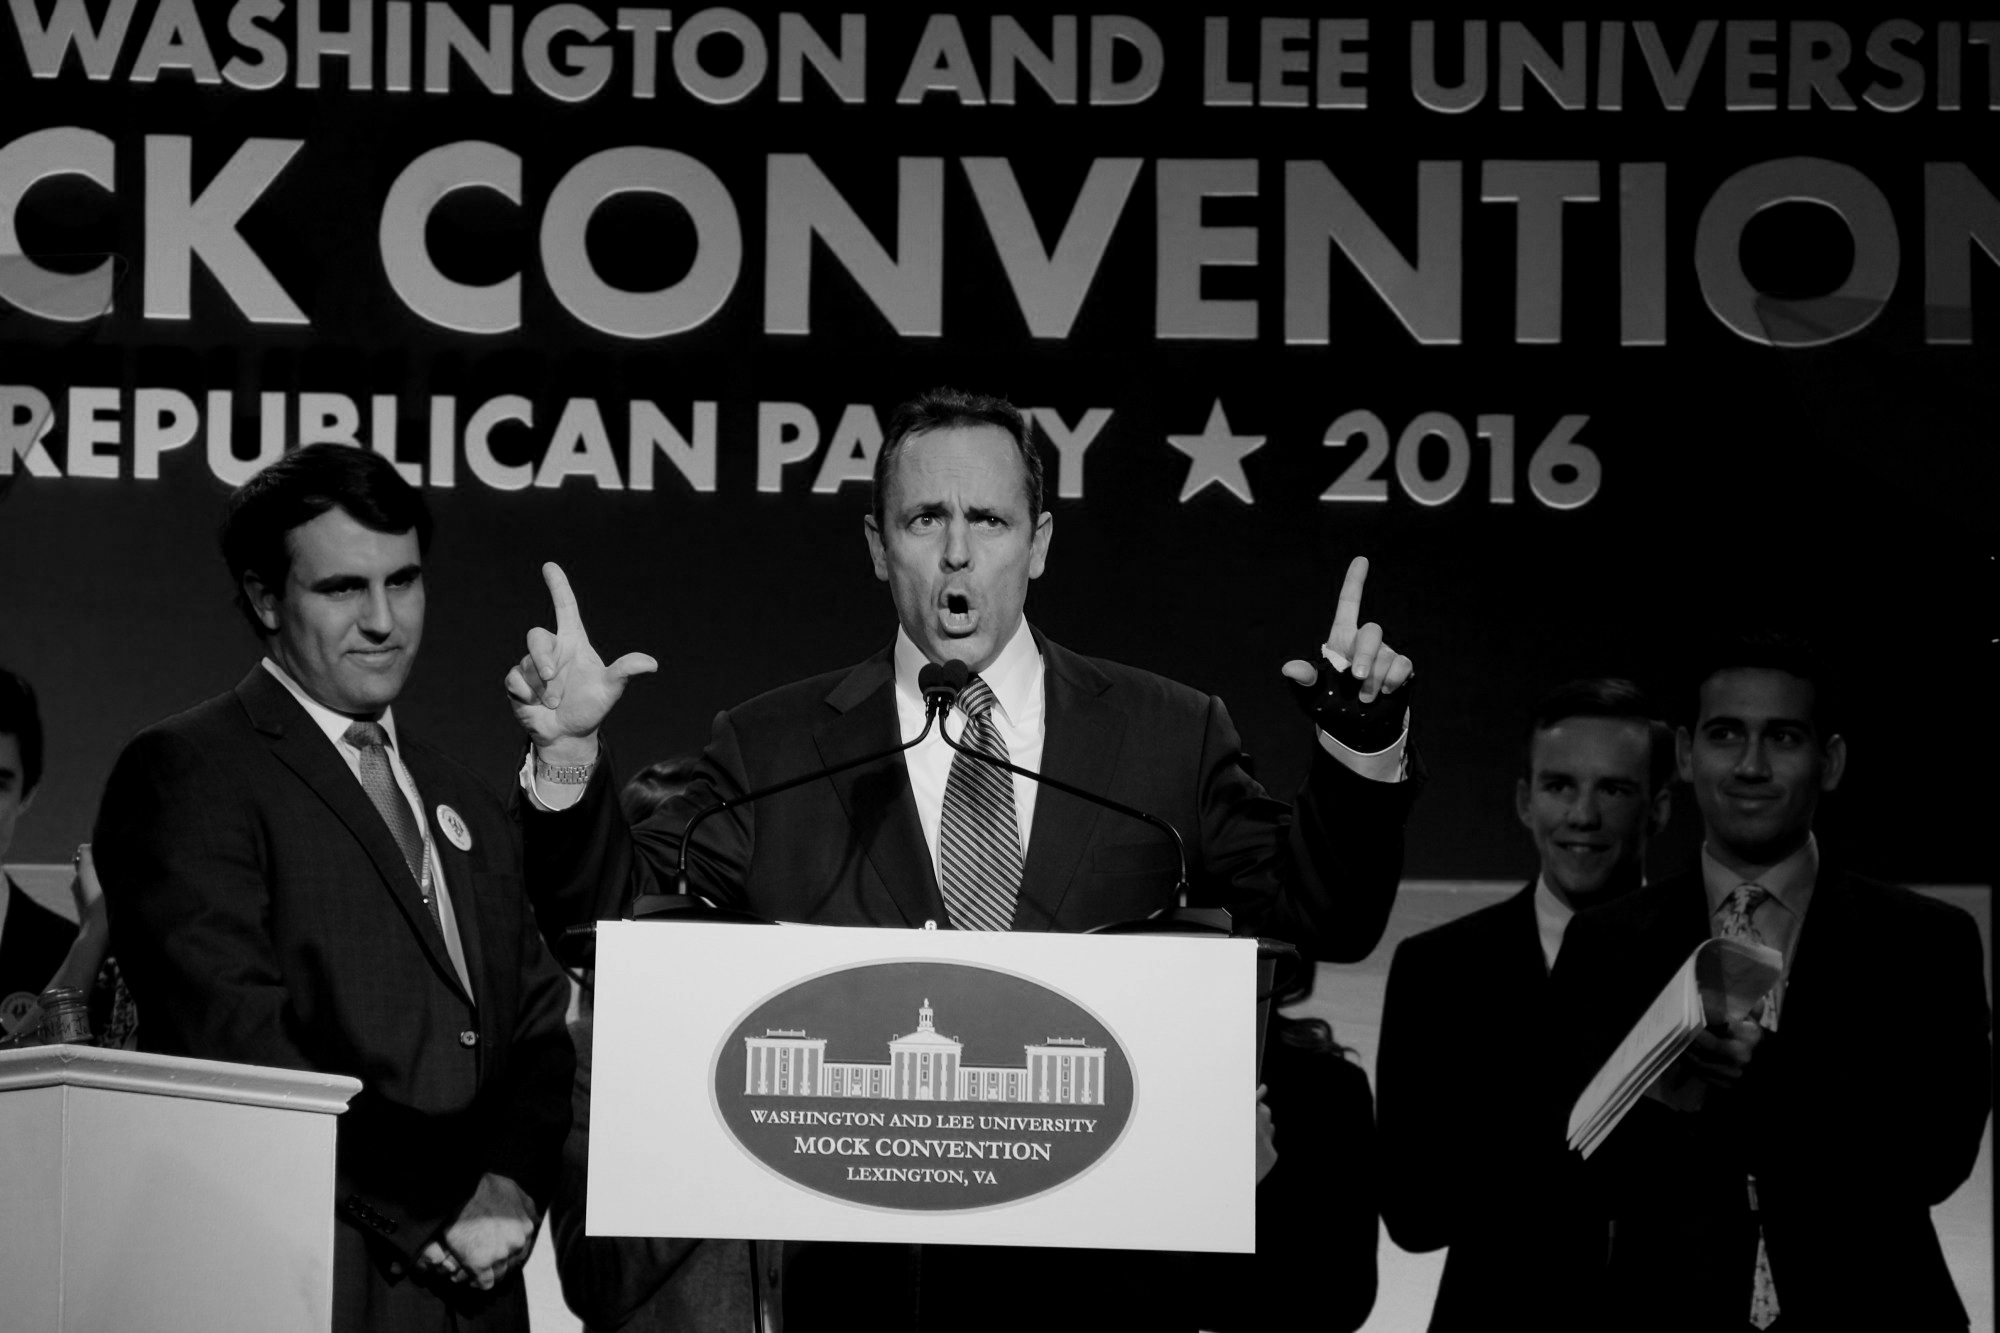 Cheny, Bevin, Lowry Announcement - 2016 Cycle